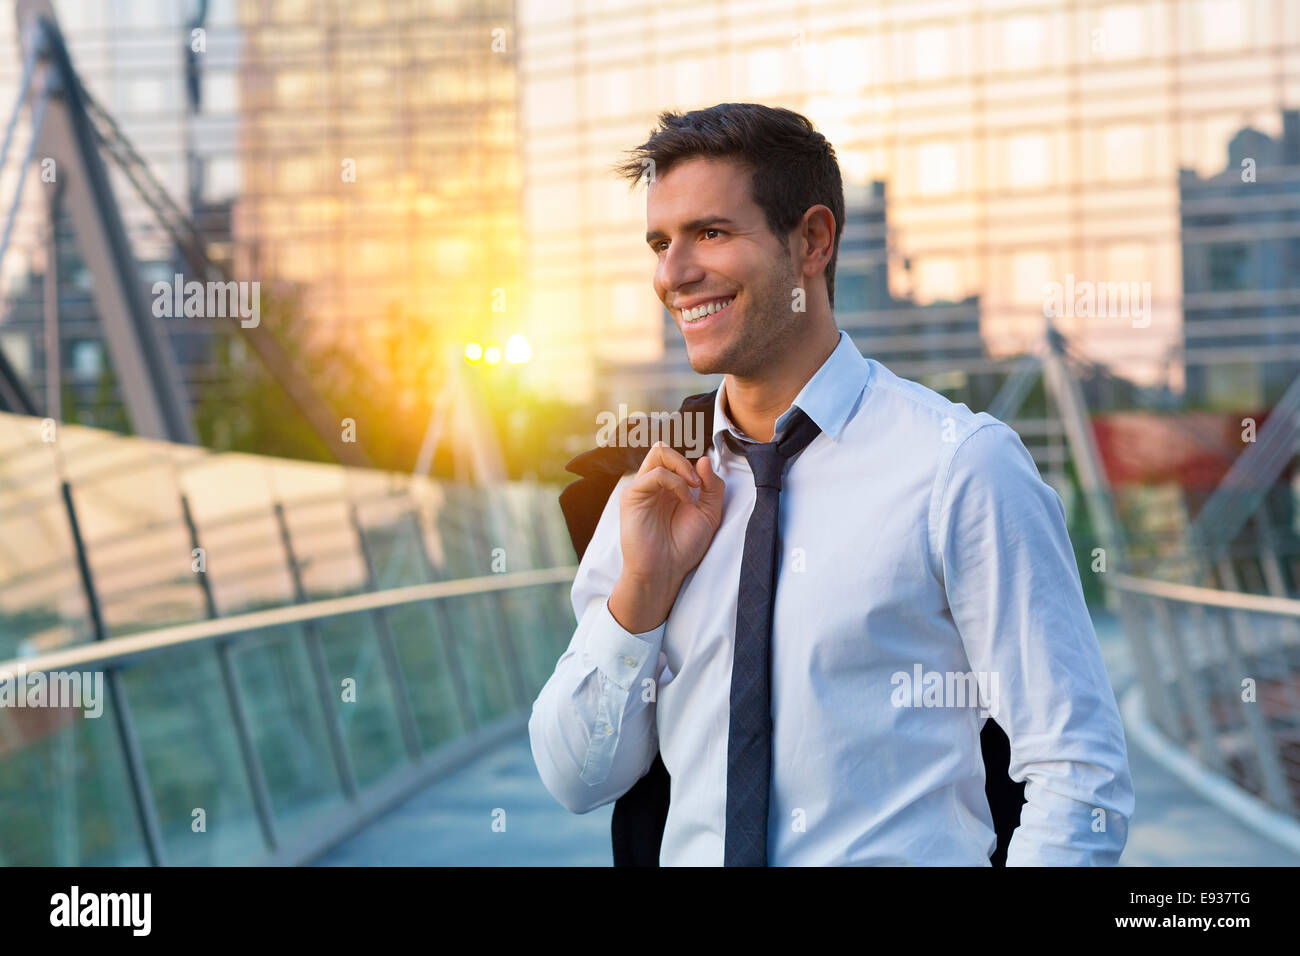 Business Portrait Immagini   Business Portrait Fotos Stock - Alamy e25c8bf54dc7